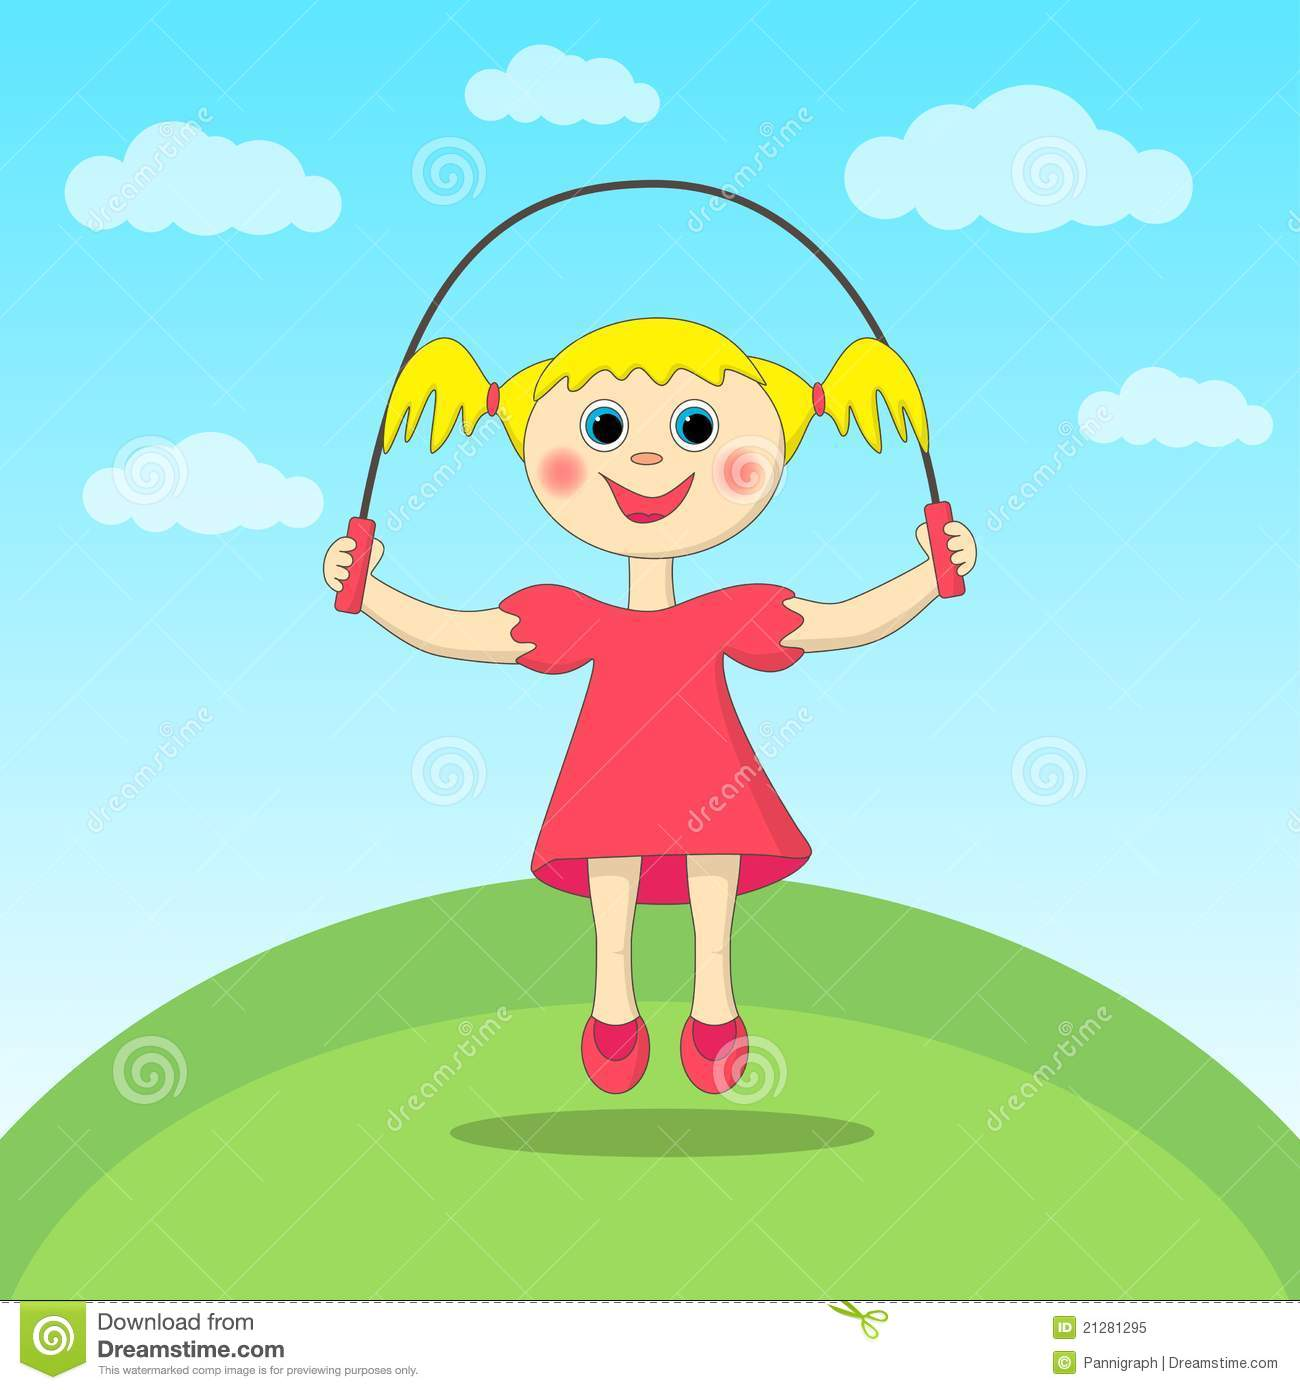 Small garden cartoon - Girl Playing With A Skipping Rope Royalty Free Stock Photo Image